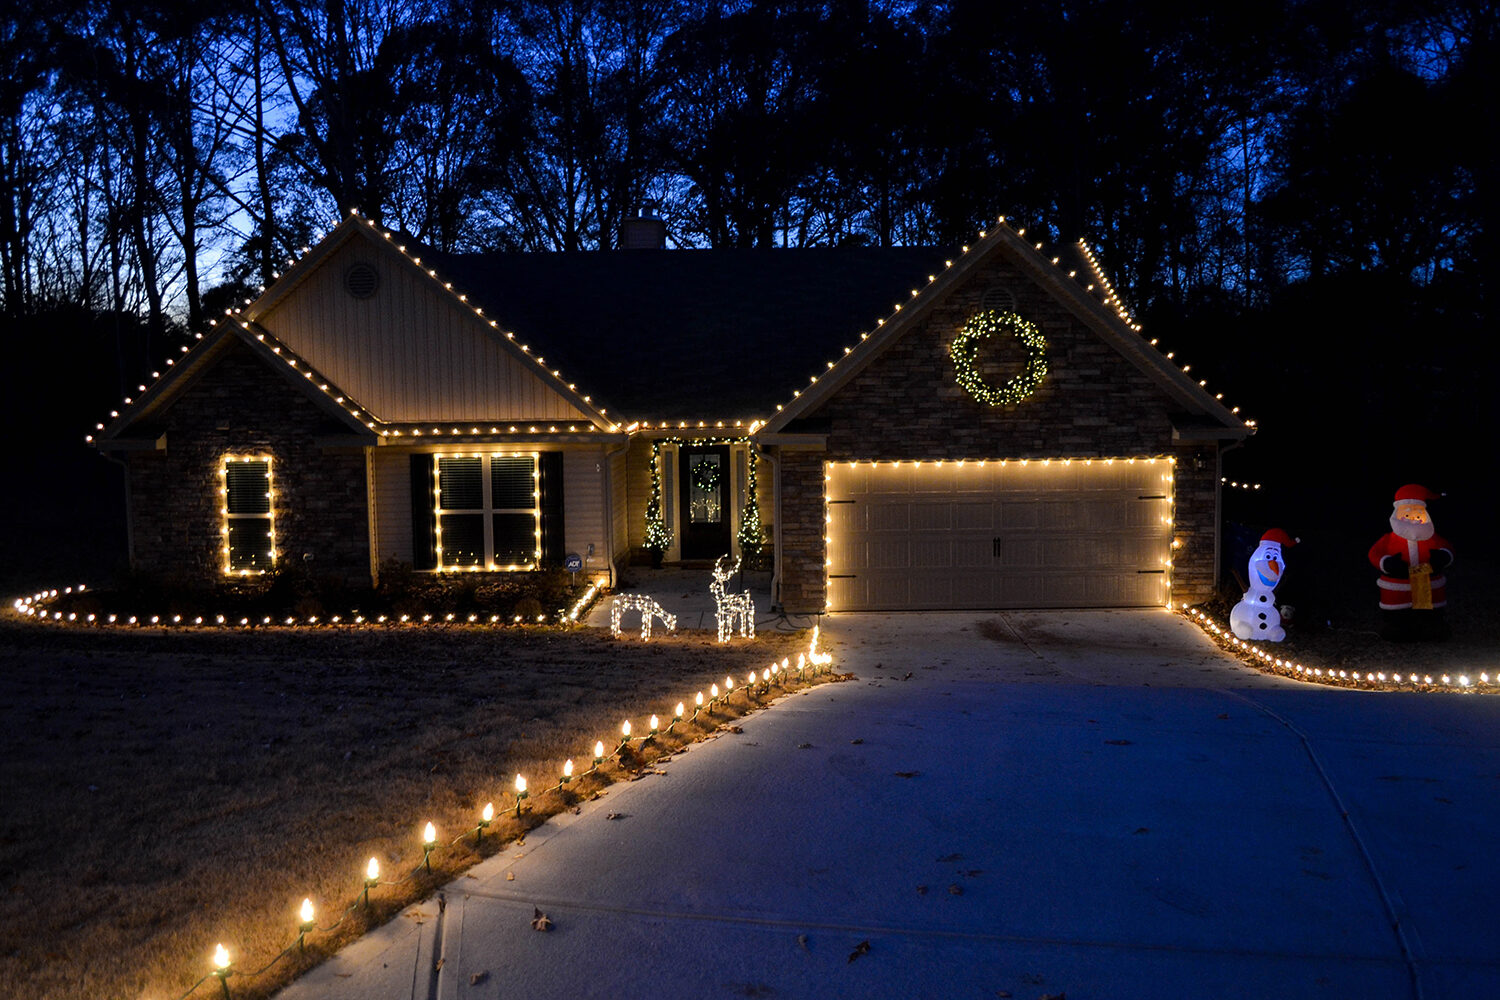 Hang Christmas lights across the roof and down the driveway. & Outdoor Christmas Decorating Ideas - Yard Envy